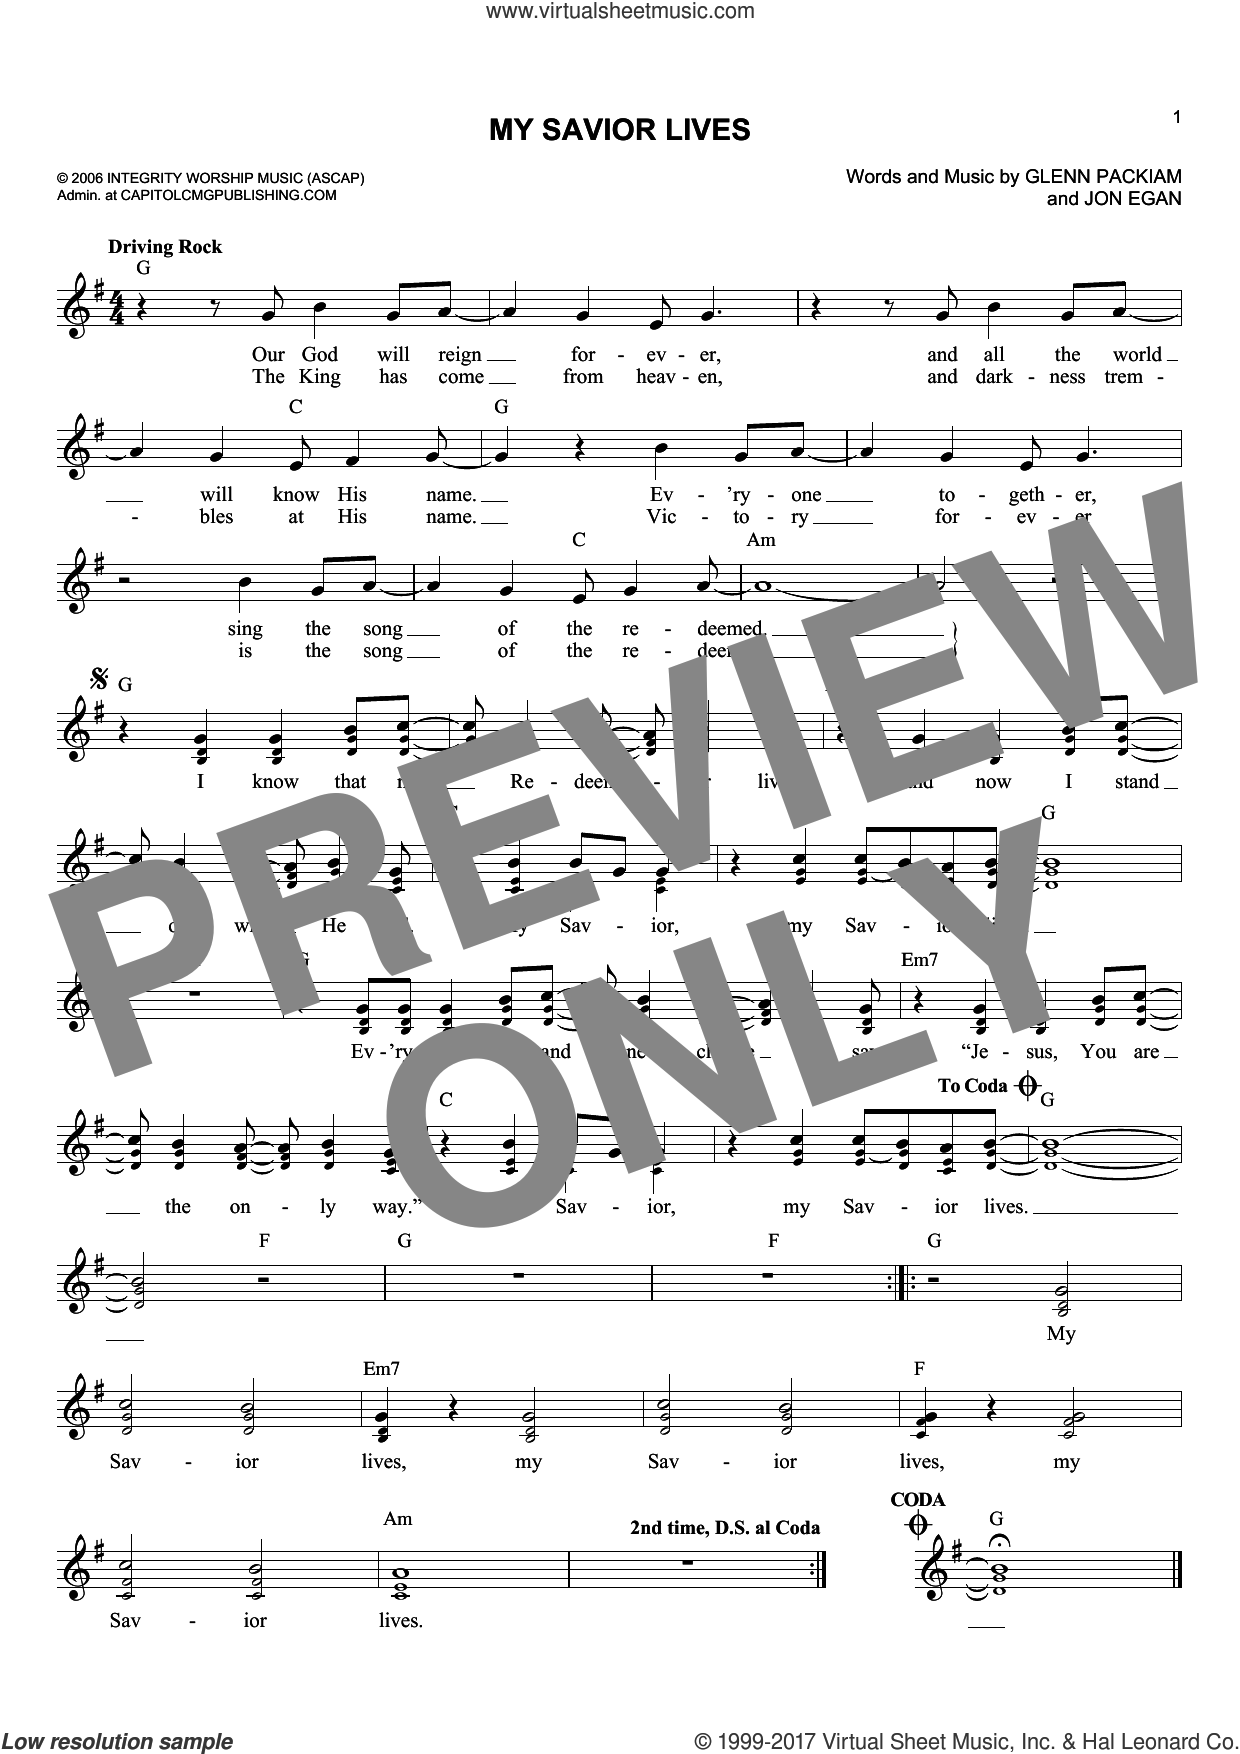 My Savior Lives sheet music for voice and other instruments (fake book) by Glenn Packiam and Jon Egan, intermediate skill level